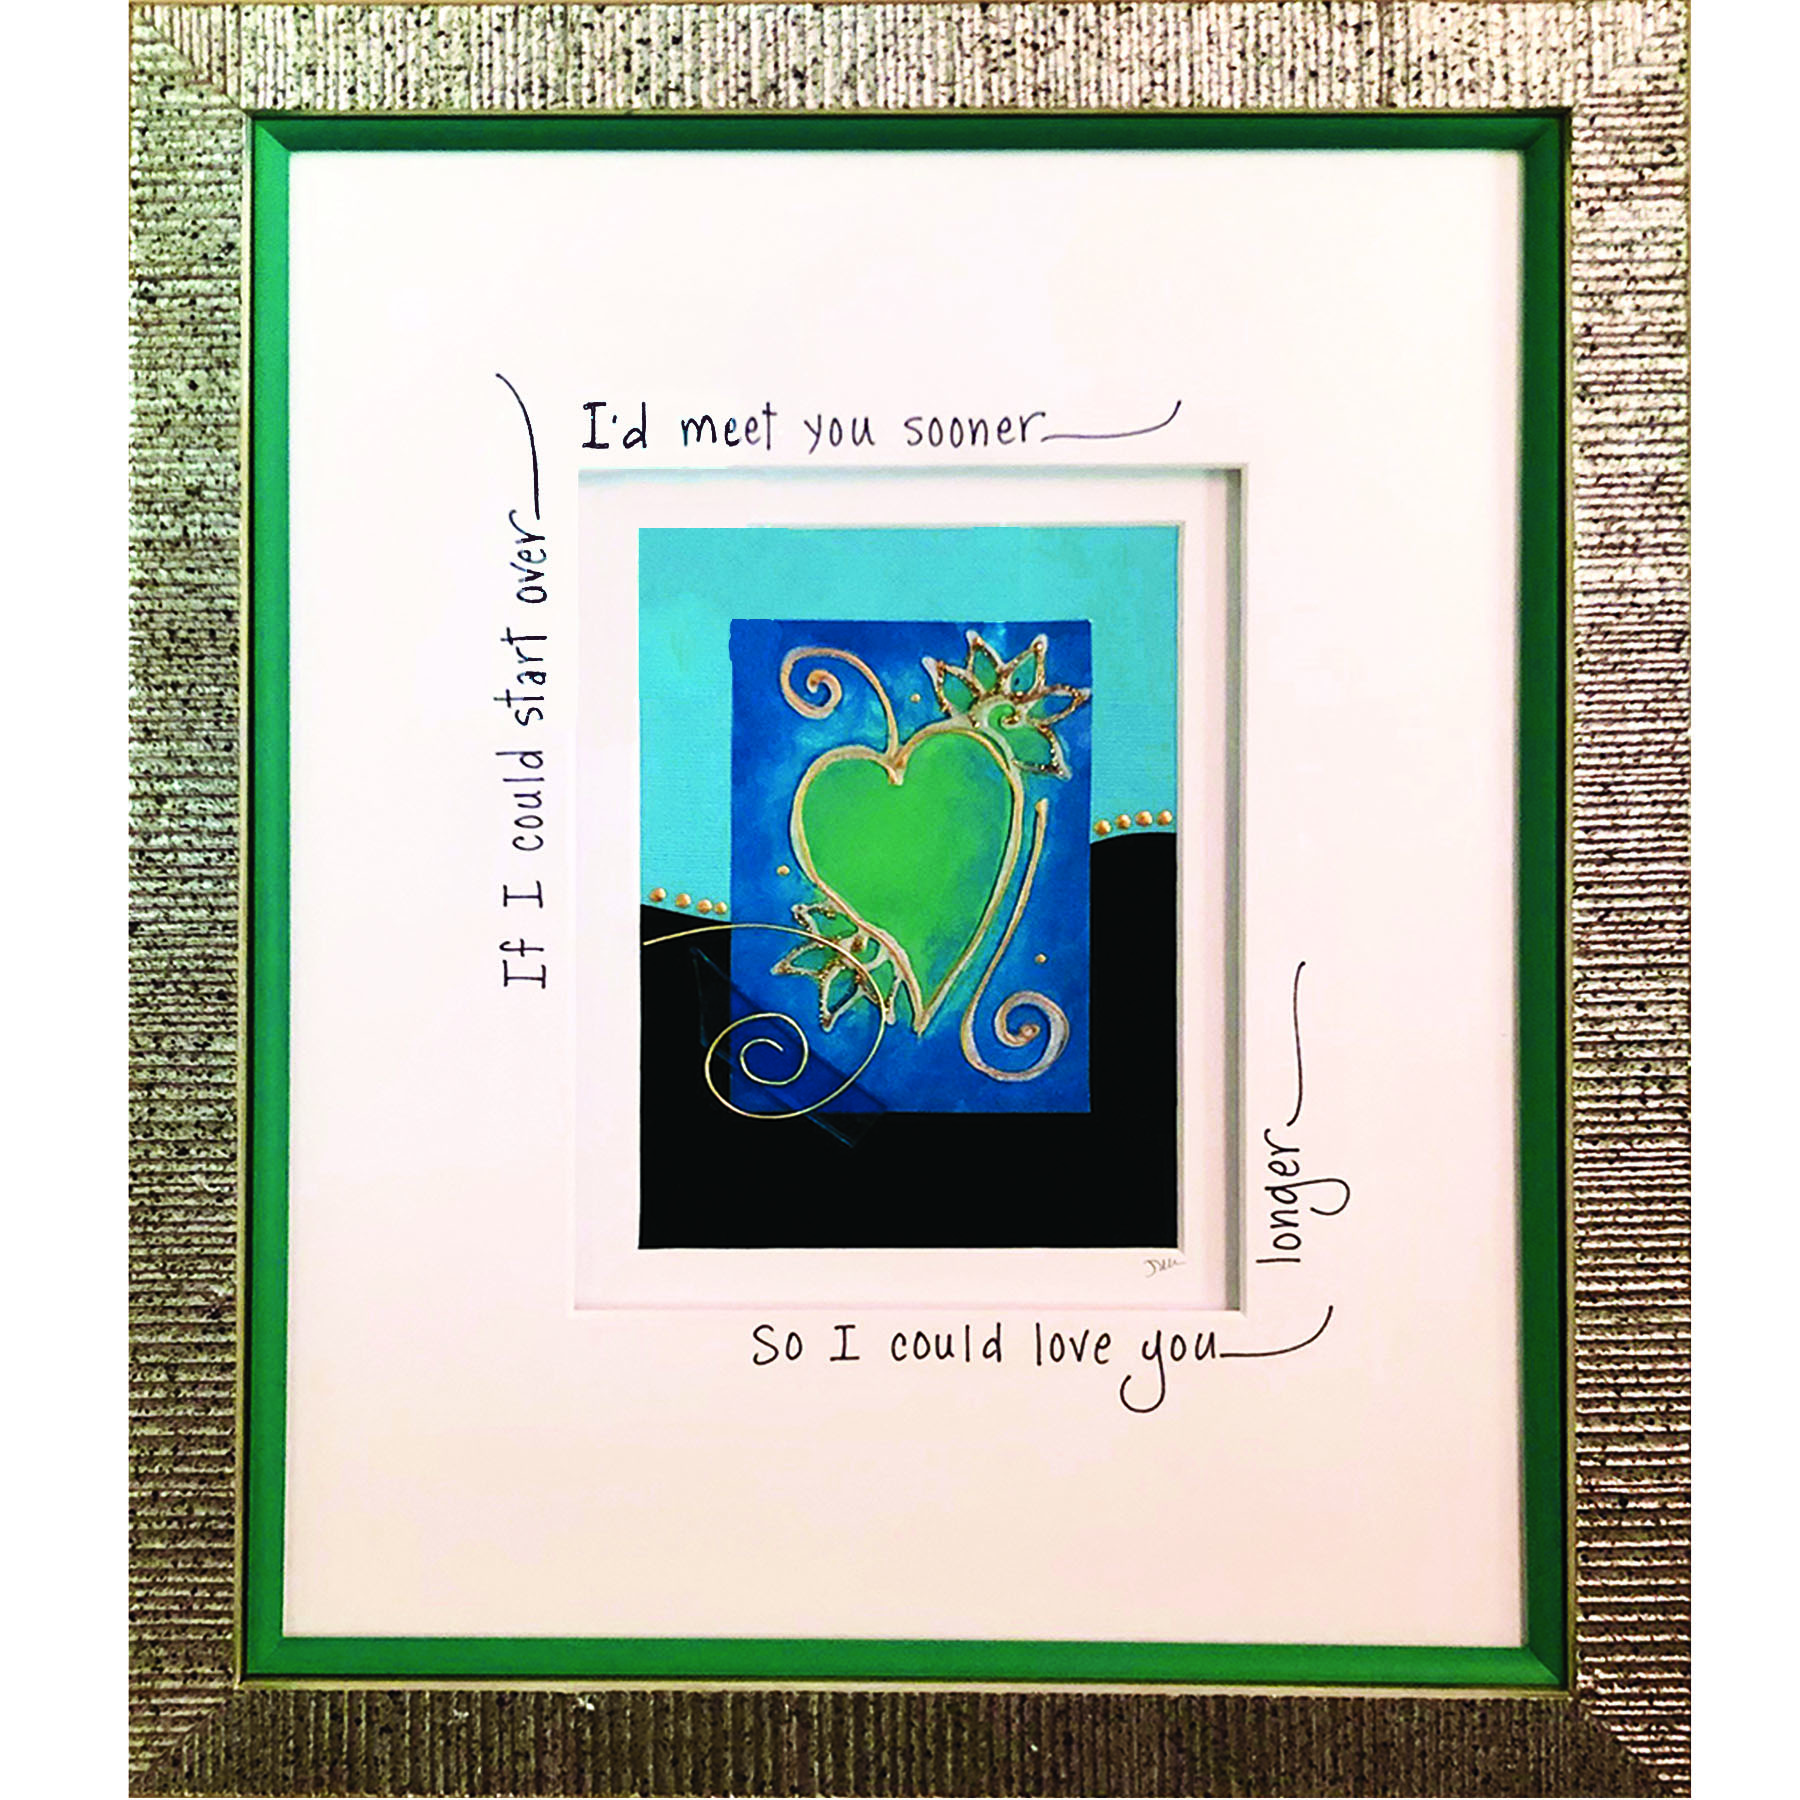 Teal artwork in textured silver frame with calligraphy on matte